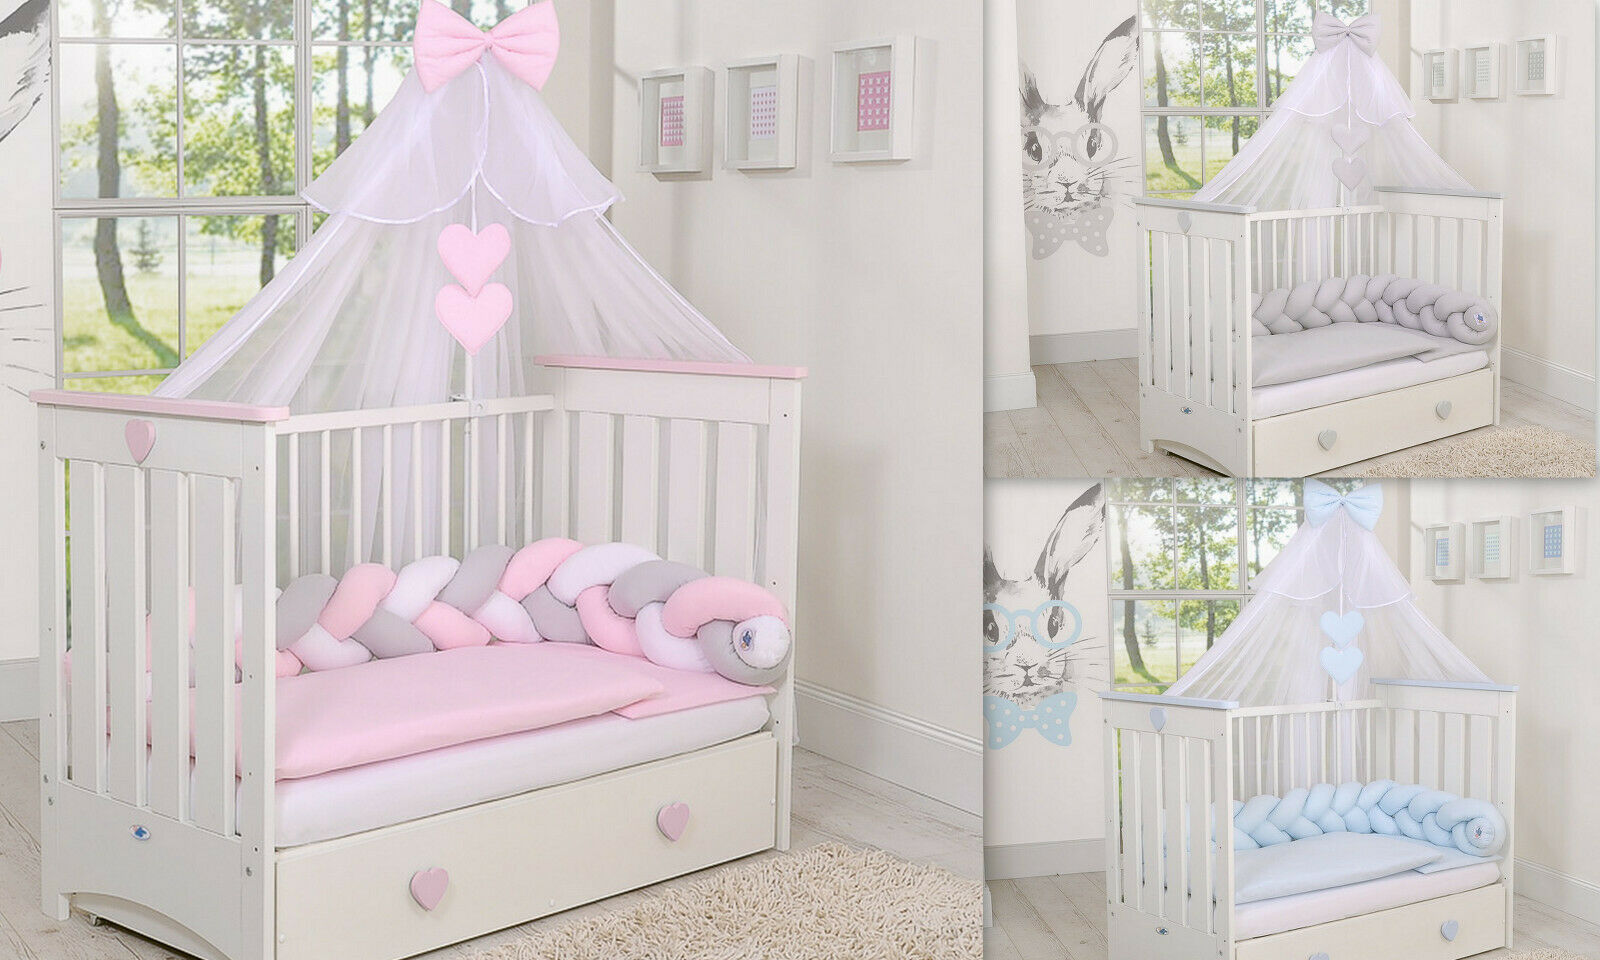 STUNNING  CANOPY  DRAPE  MOSQUITO NET  -BIG 470cm WIDTH 4 baby Cot or Cot bed